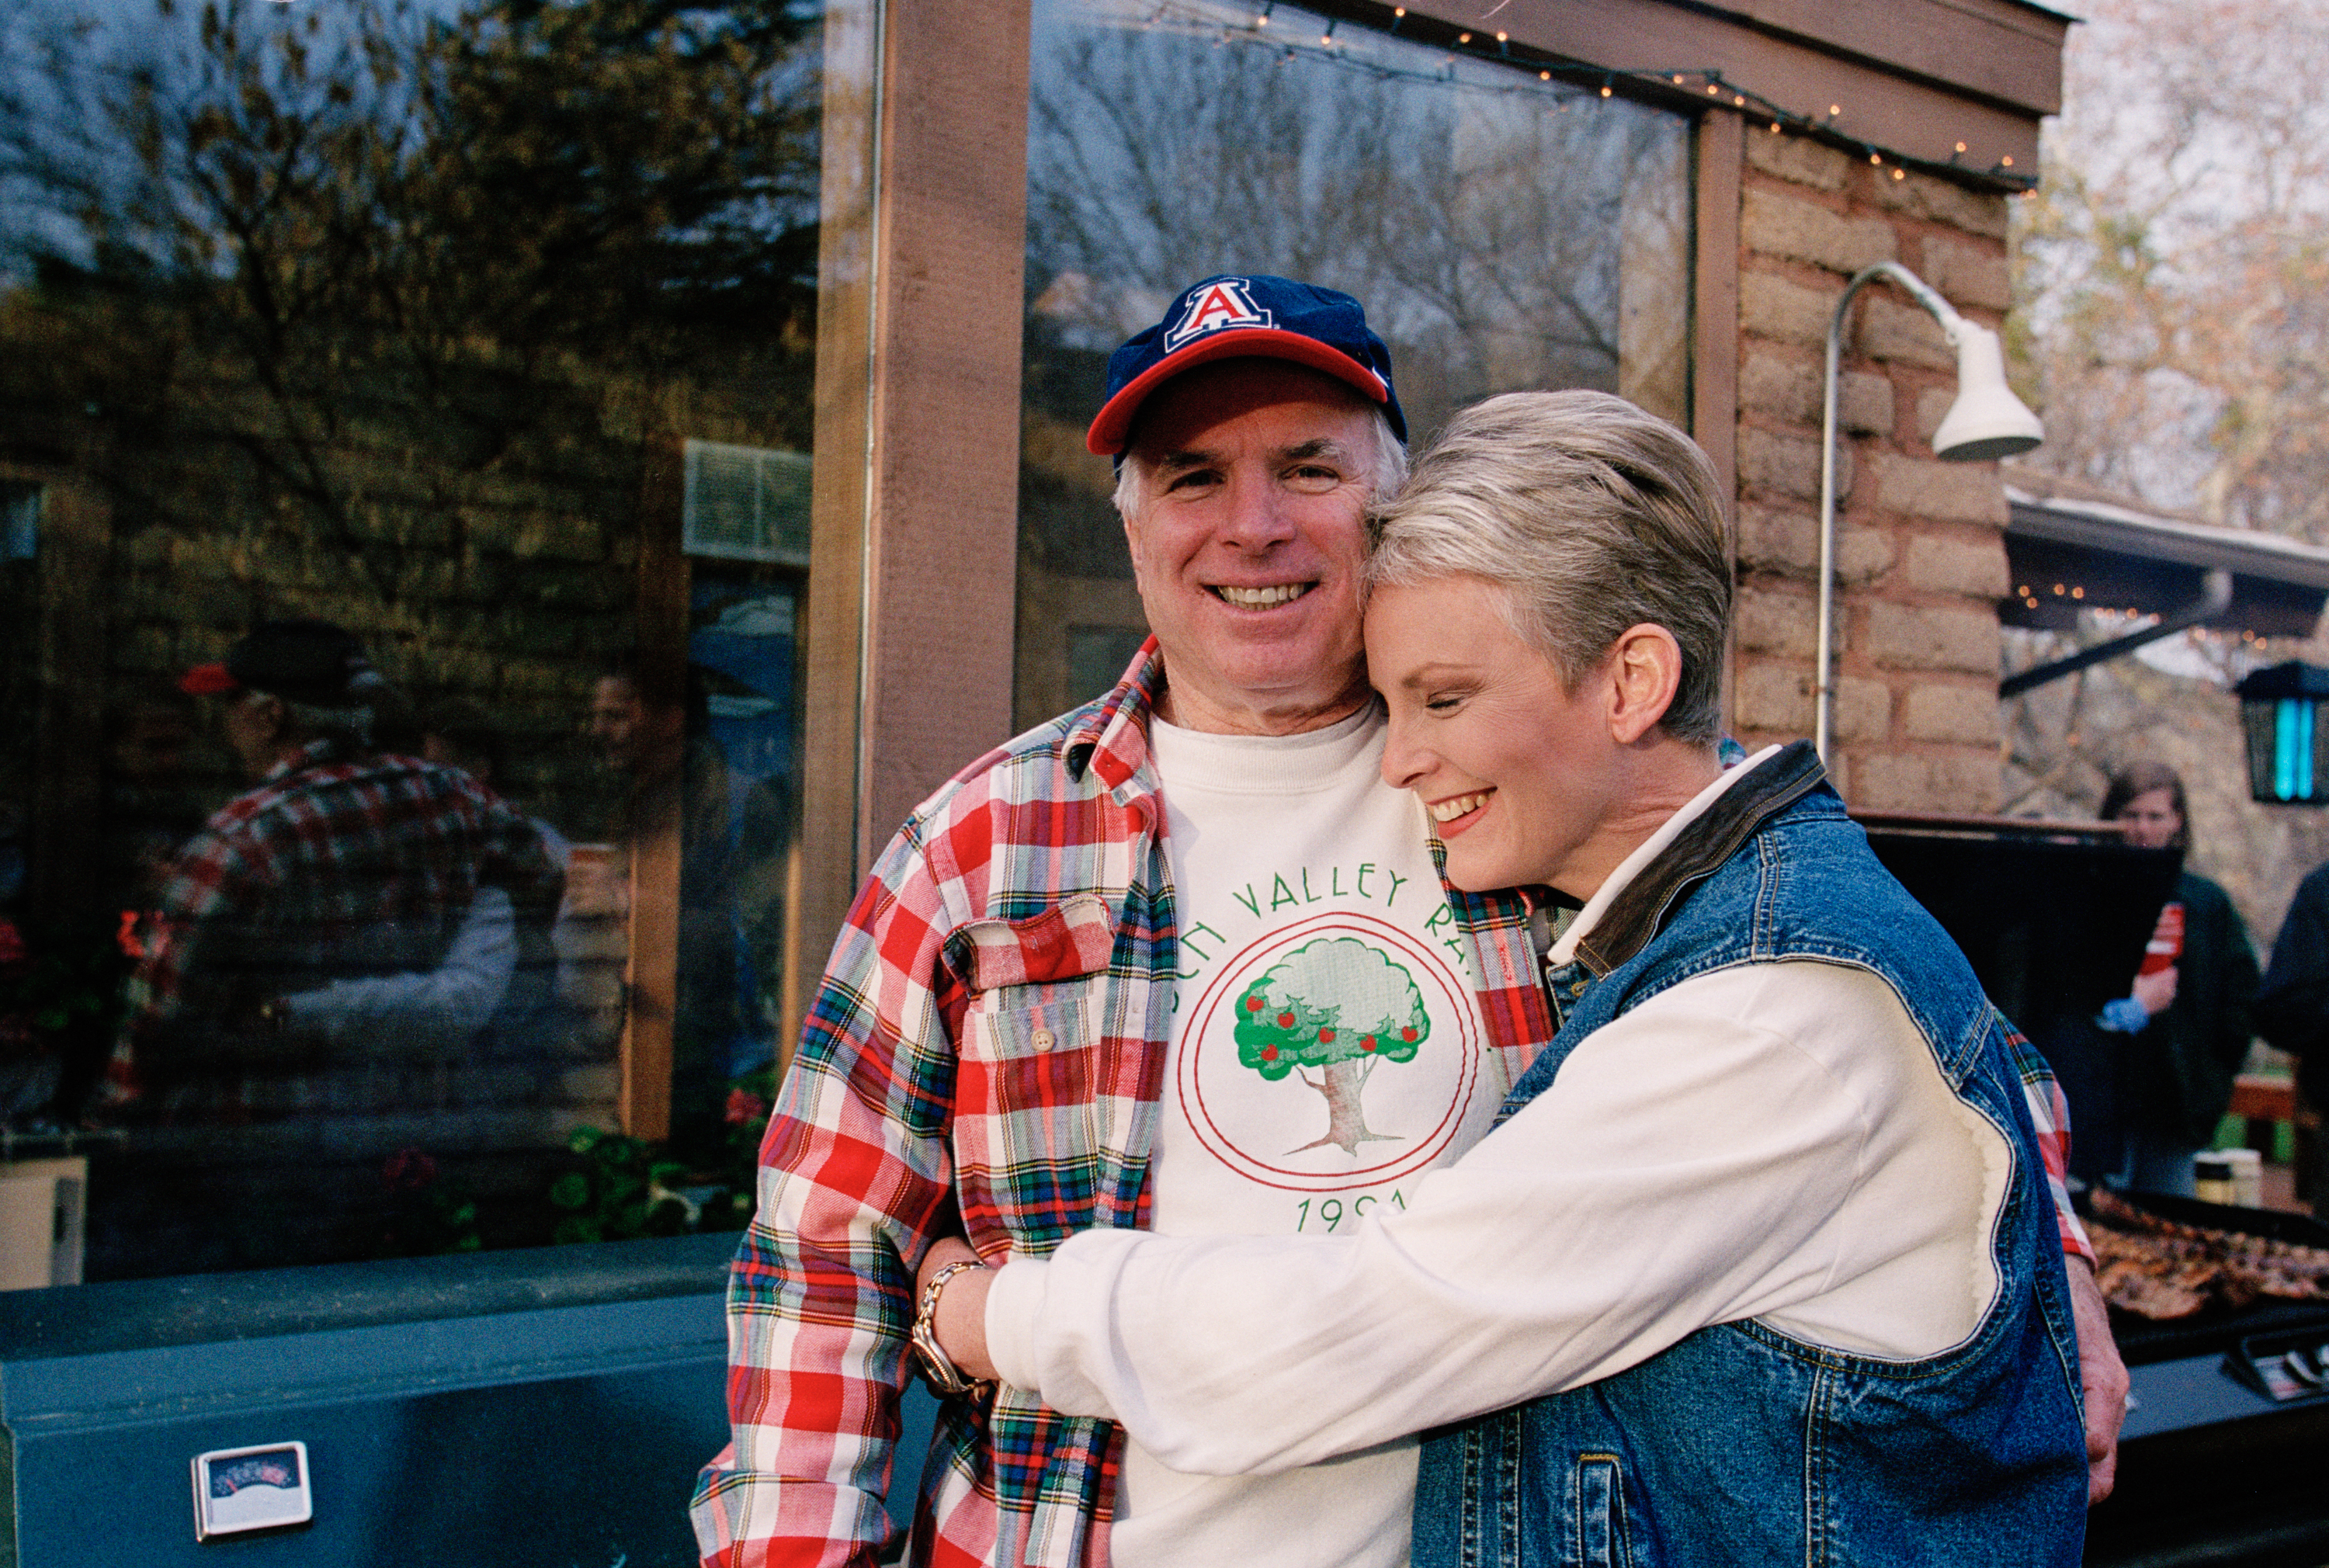 Presidential candidate John McCain (L) and his wife, Cindy McCain, smile for the camera at their family ranch, March 9, 2000 near Sedona, Arizona.